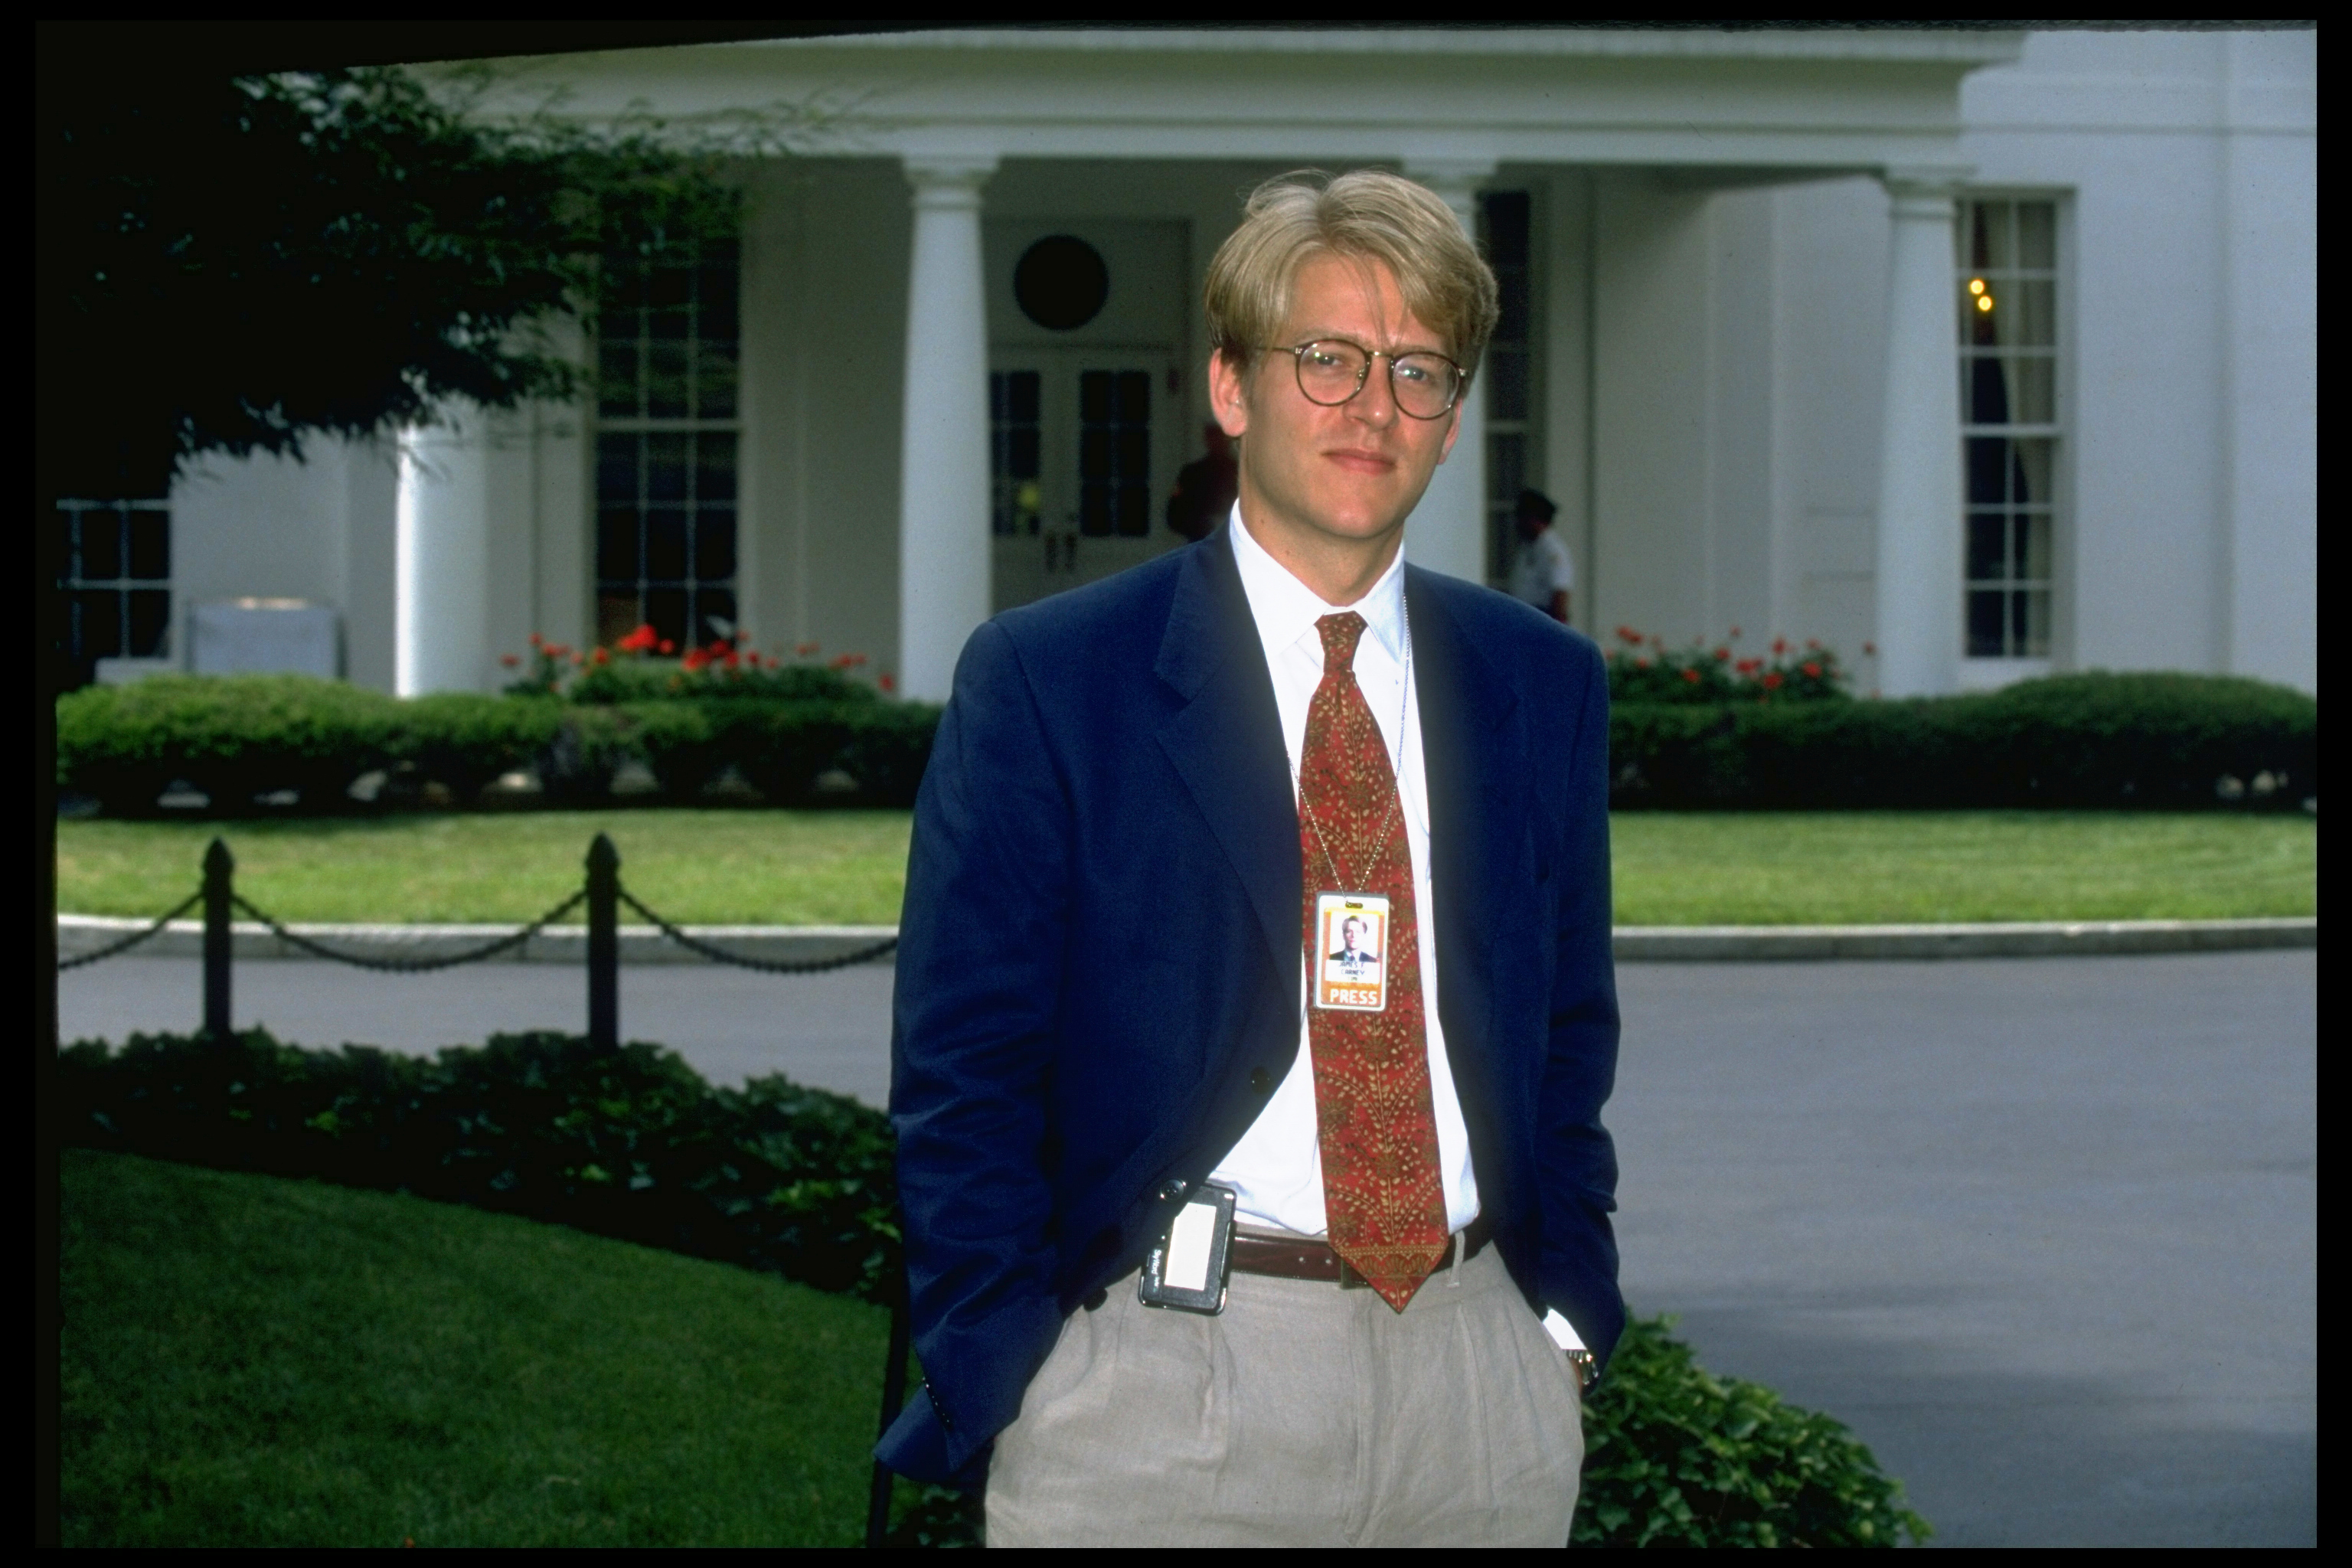 TIME White House correspondent Jay Carney outside the West Wing of of the White House in Washington on July 22, 1994.